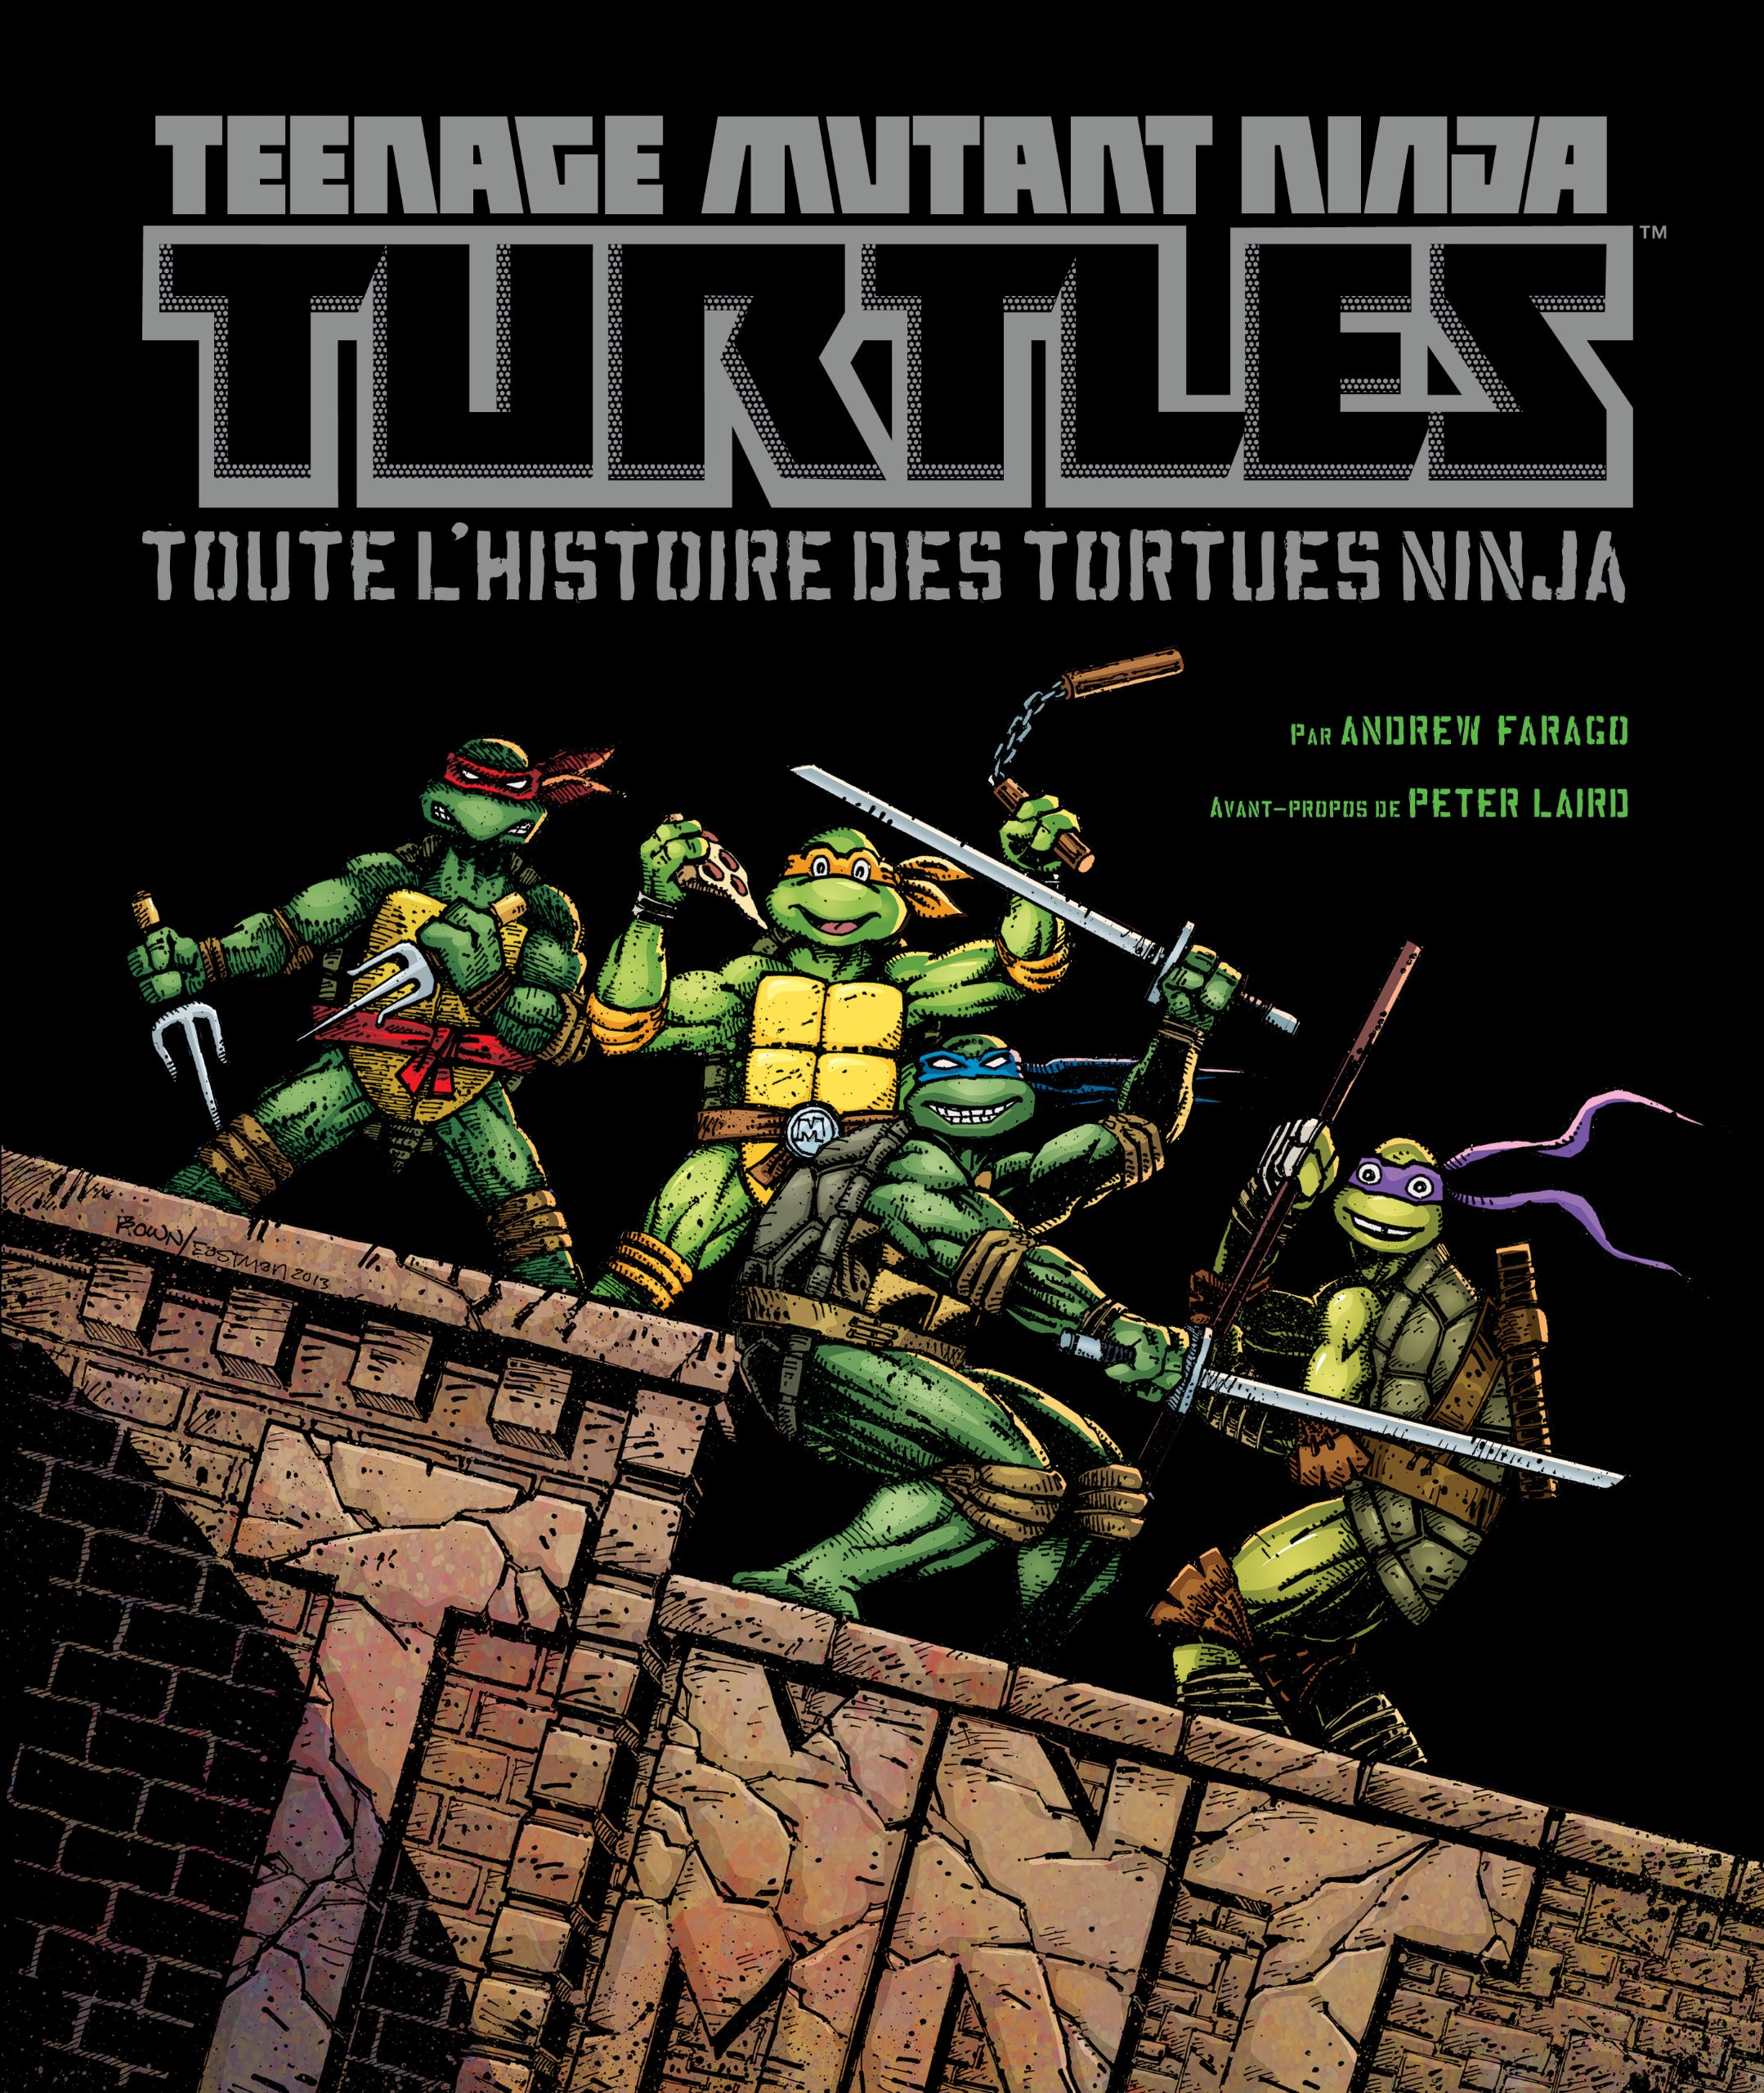 Teenage Mutant Ninja Turtles : Toute lhistoire des Tortues ...